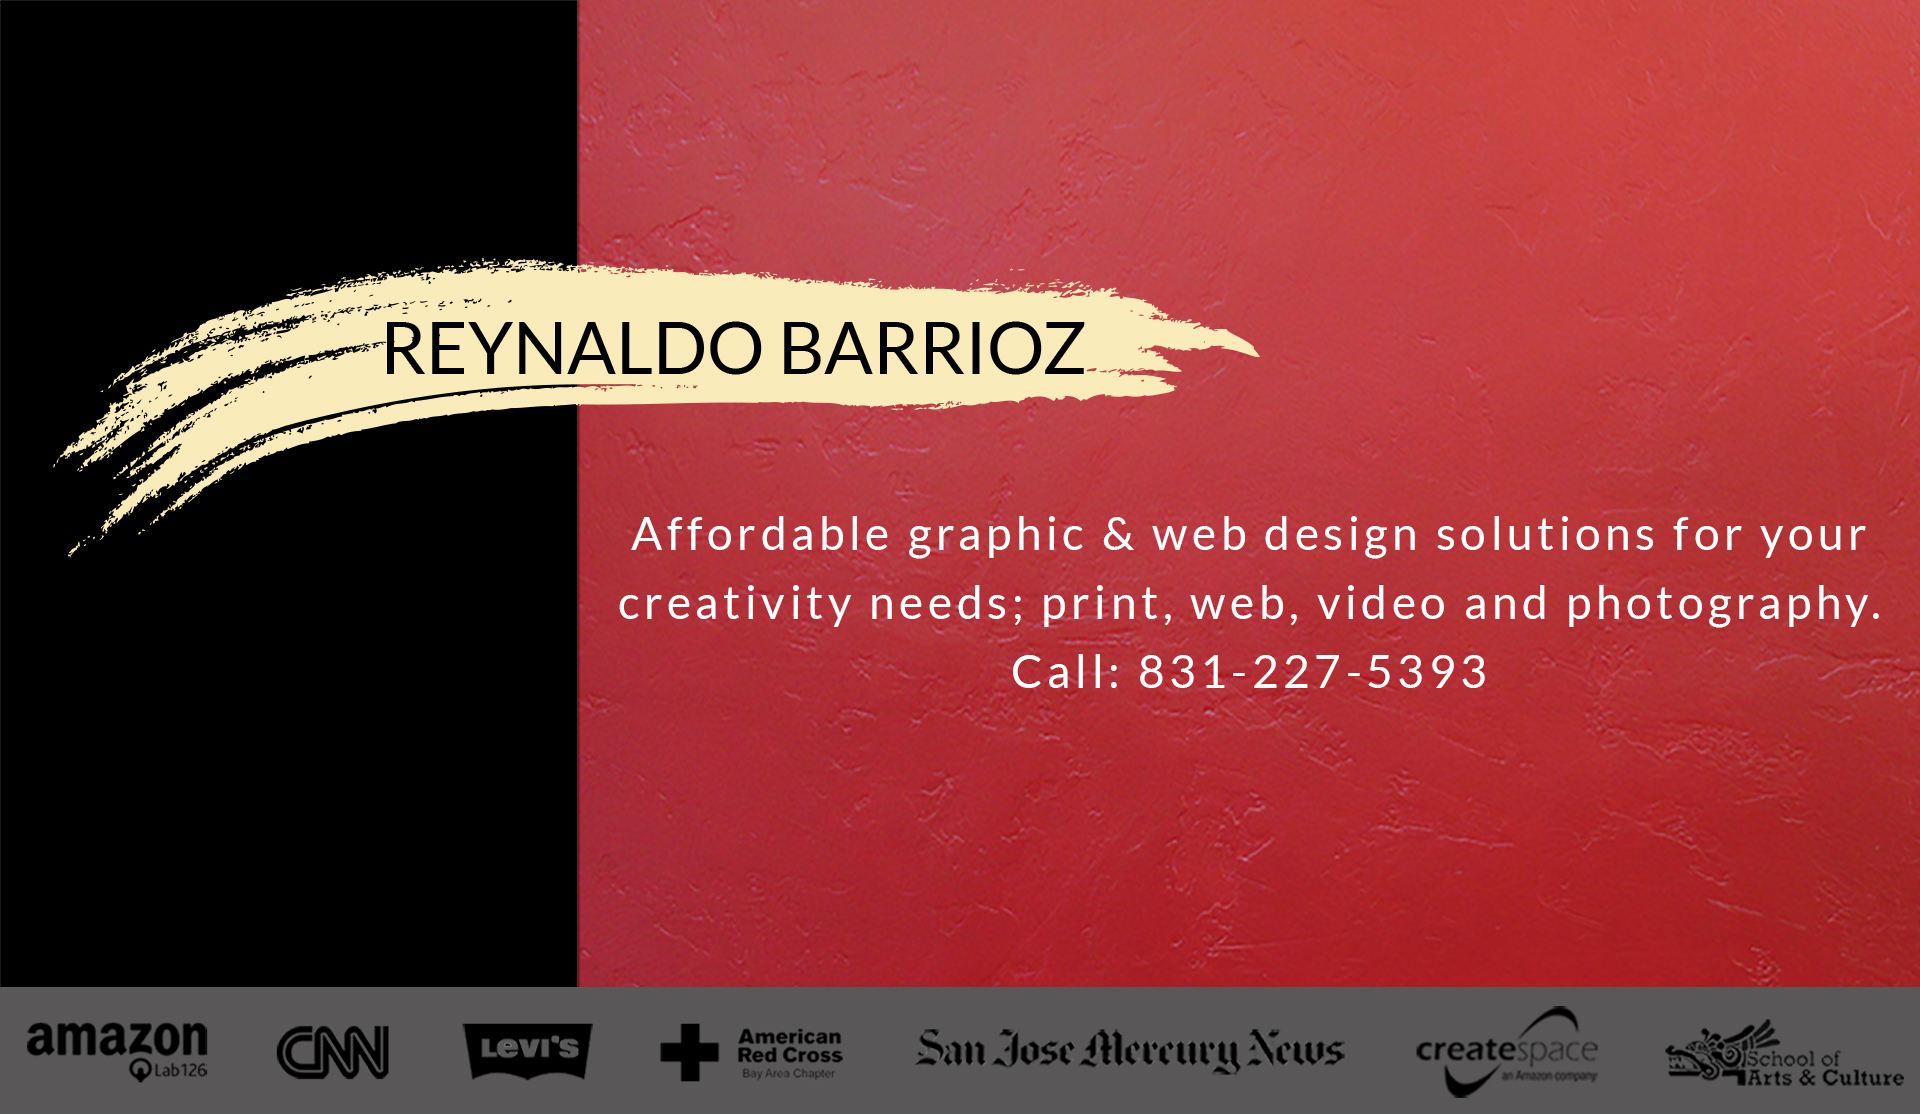 Hi, I'm Reynaldo Barrioz. Generalist Graphic Designer with a passion for creating compelling visuals through the use of typography, color, and images that frame the message with a persuasive call to action.